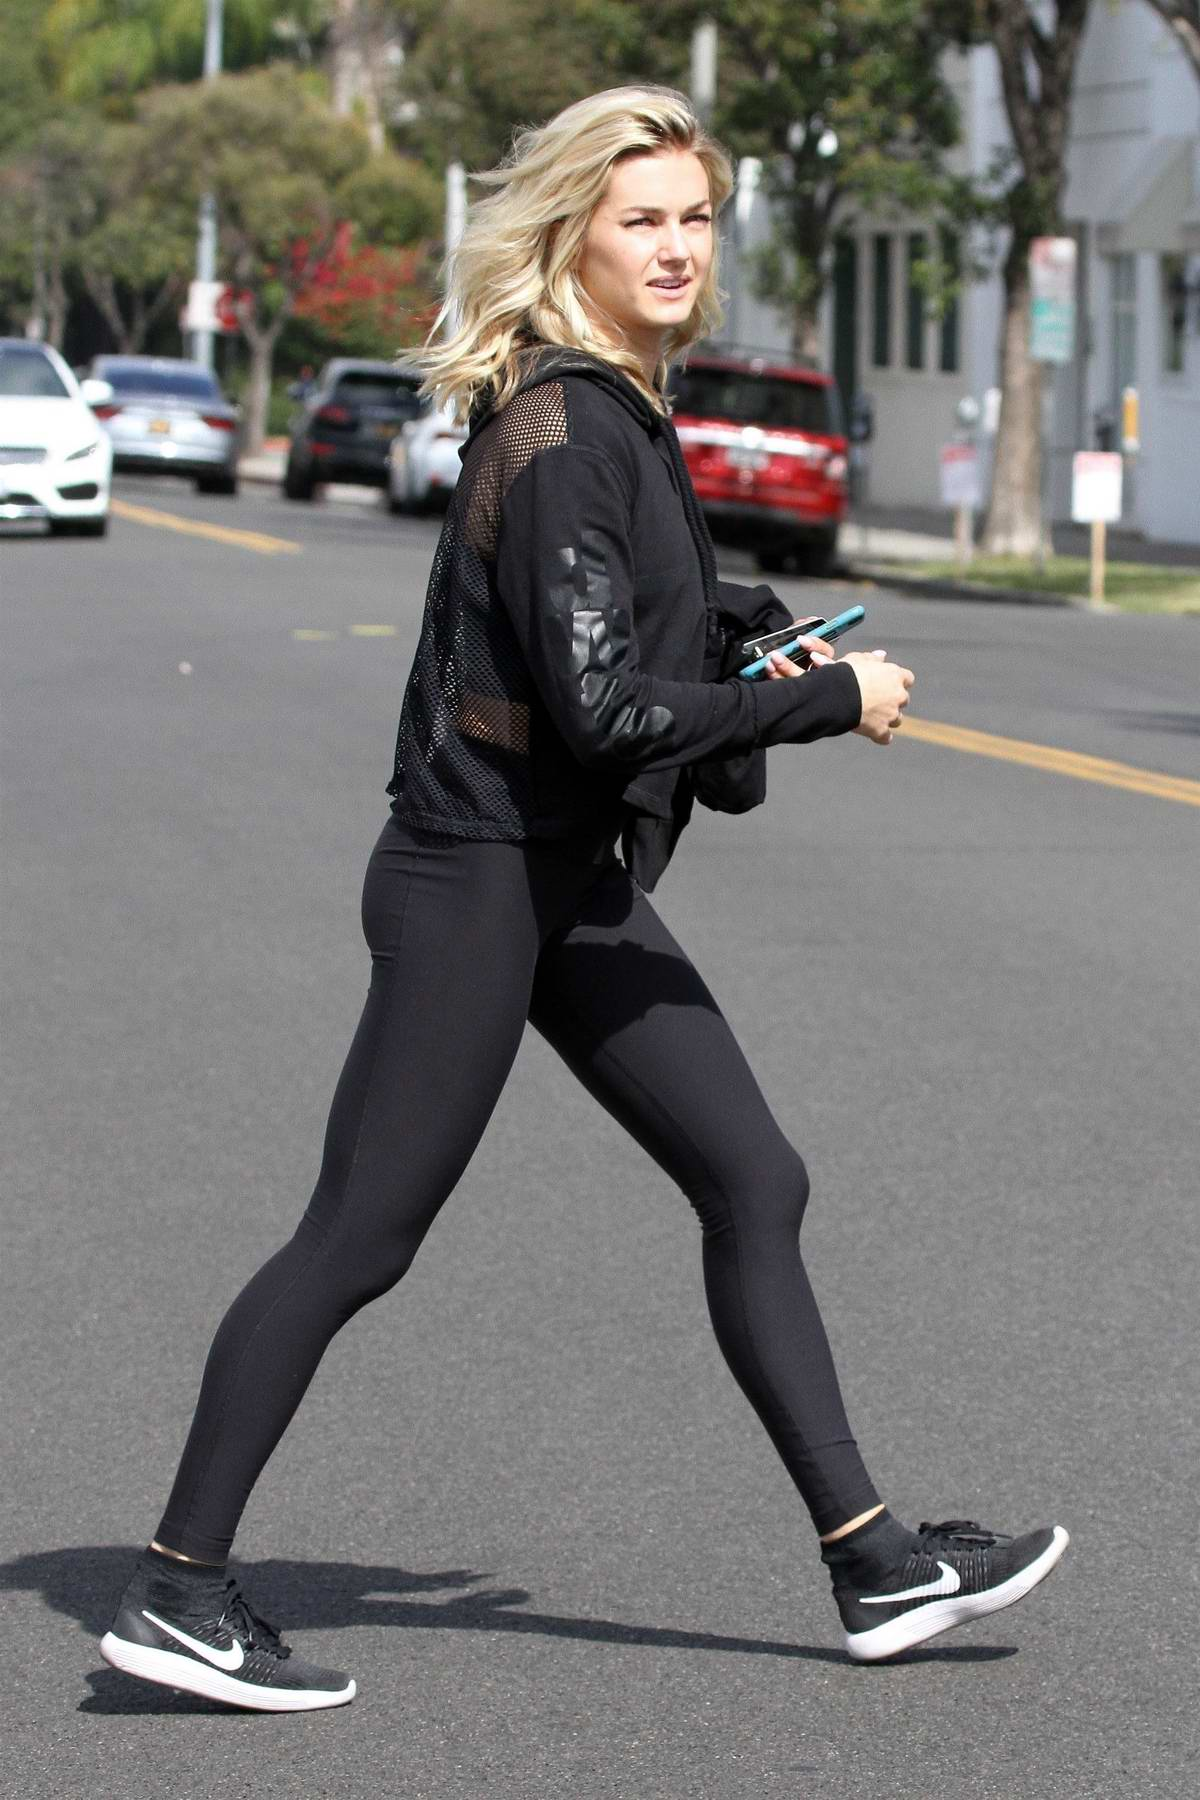 Lindsay Arnold has some trouble at the parking meter ahead of dance practice in Los Angeles